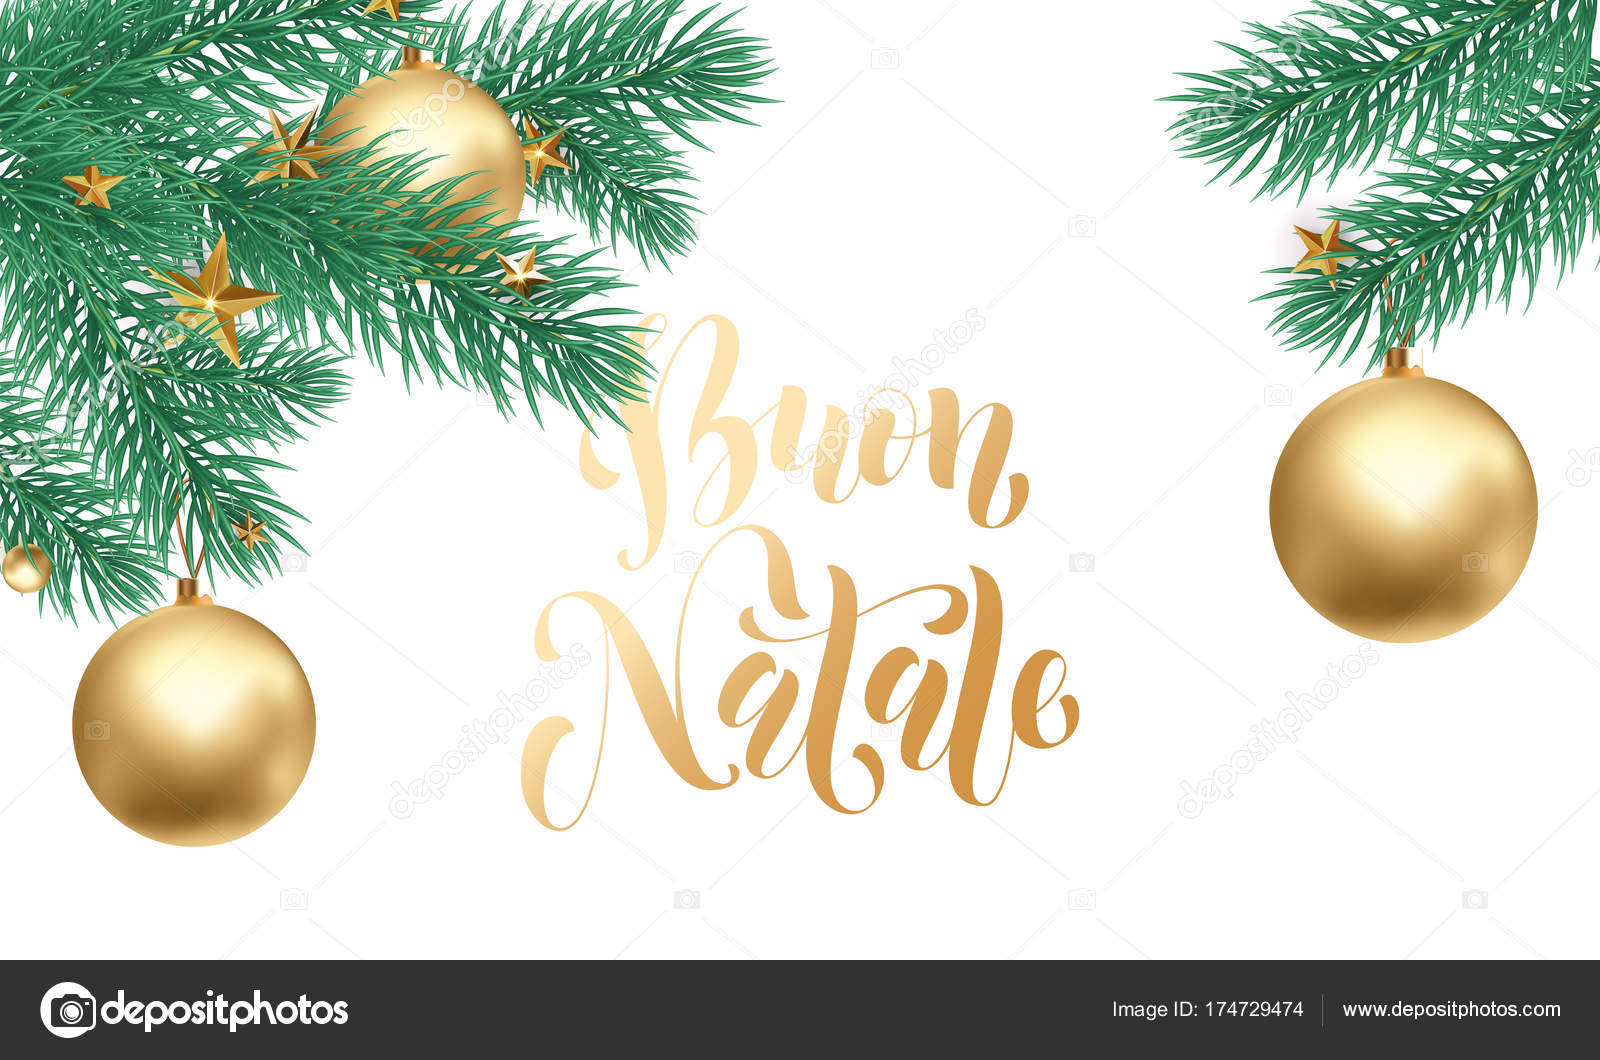 Merry Christmas In Italian.Buon Natale Italian Merry Christmas Holiday Golden Hand